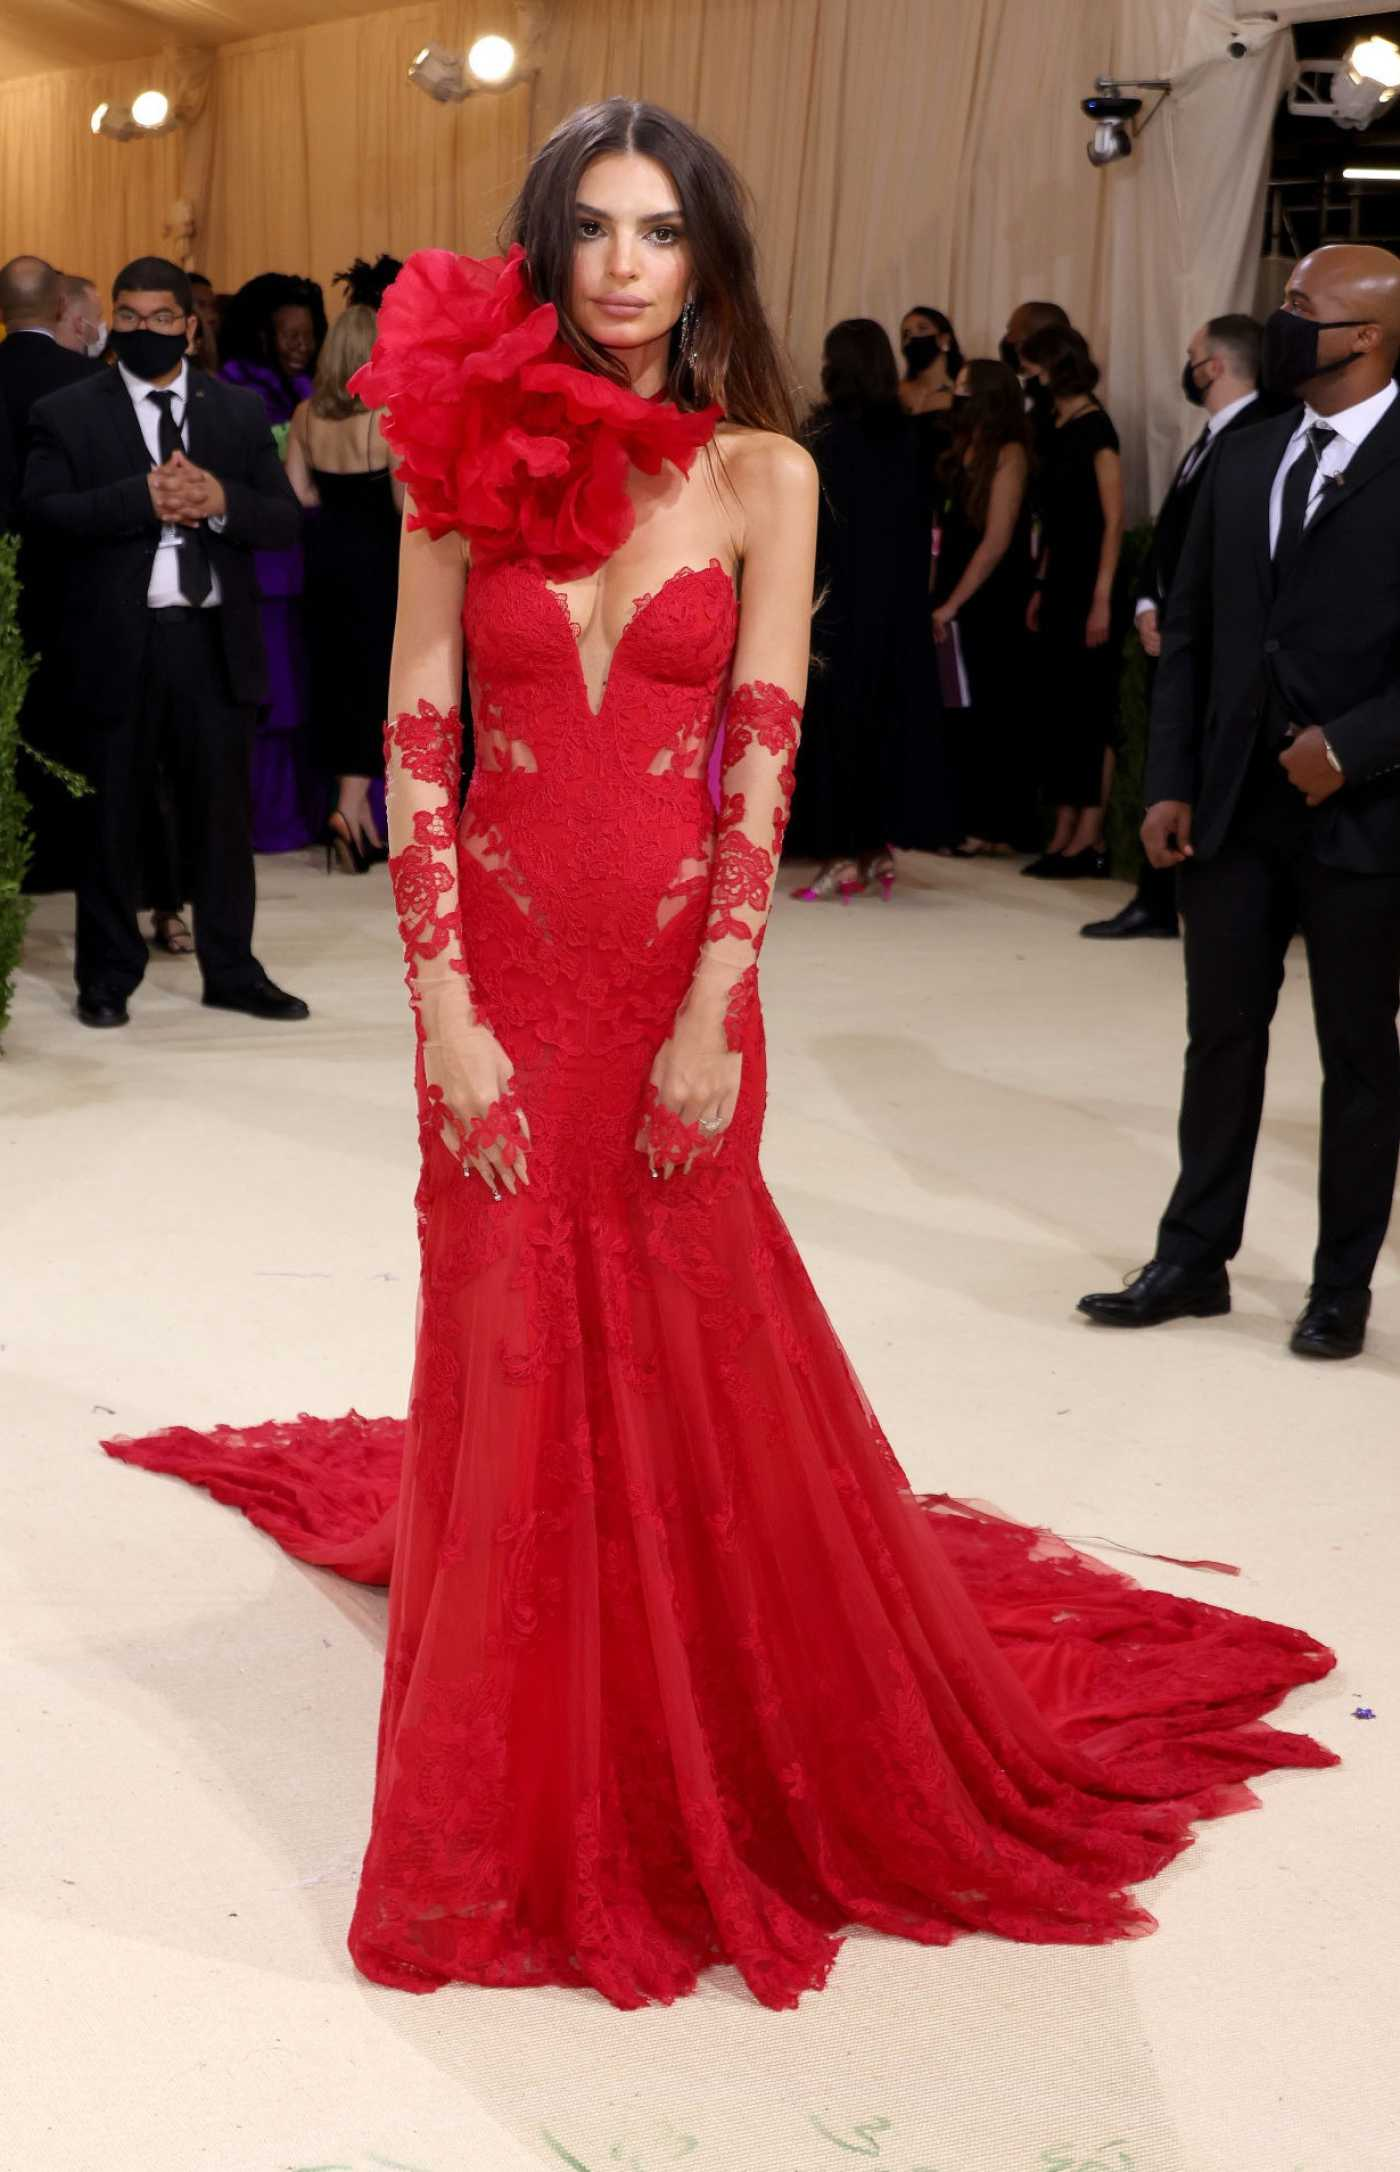 Emily Ratajkowski Attends 2021 Met Gala In America: A Lexicon of Fashion at Metropolitan Museum of Art in New York City 09/13/2021